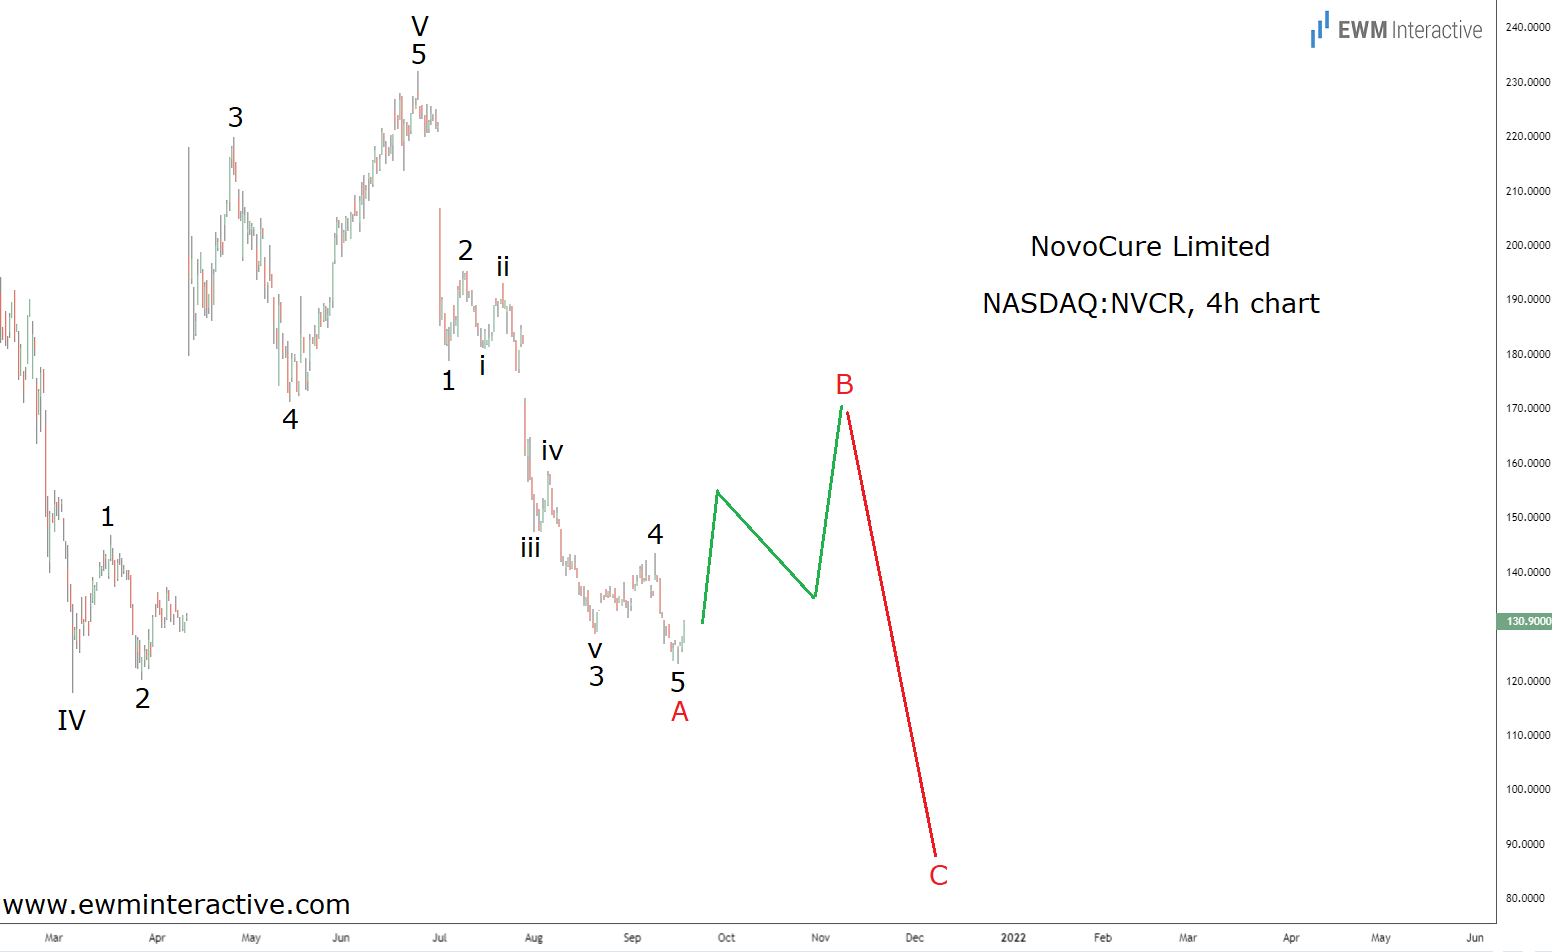 NovoCure draws an impulse pattern to the downside